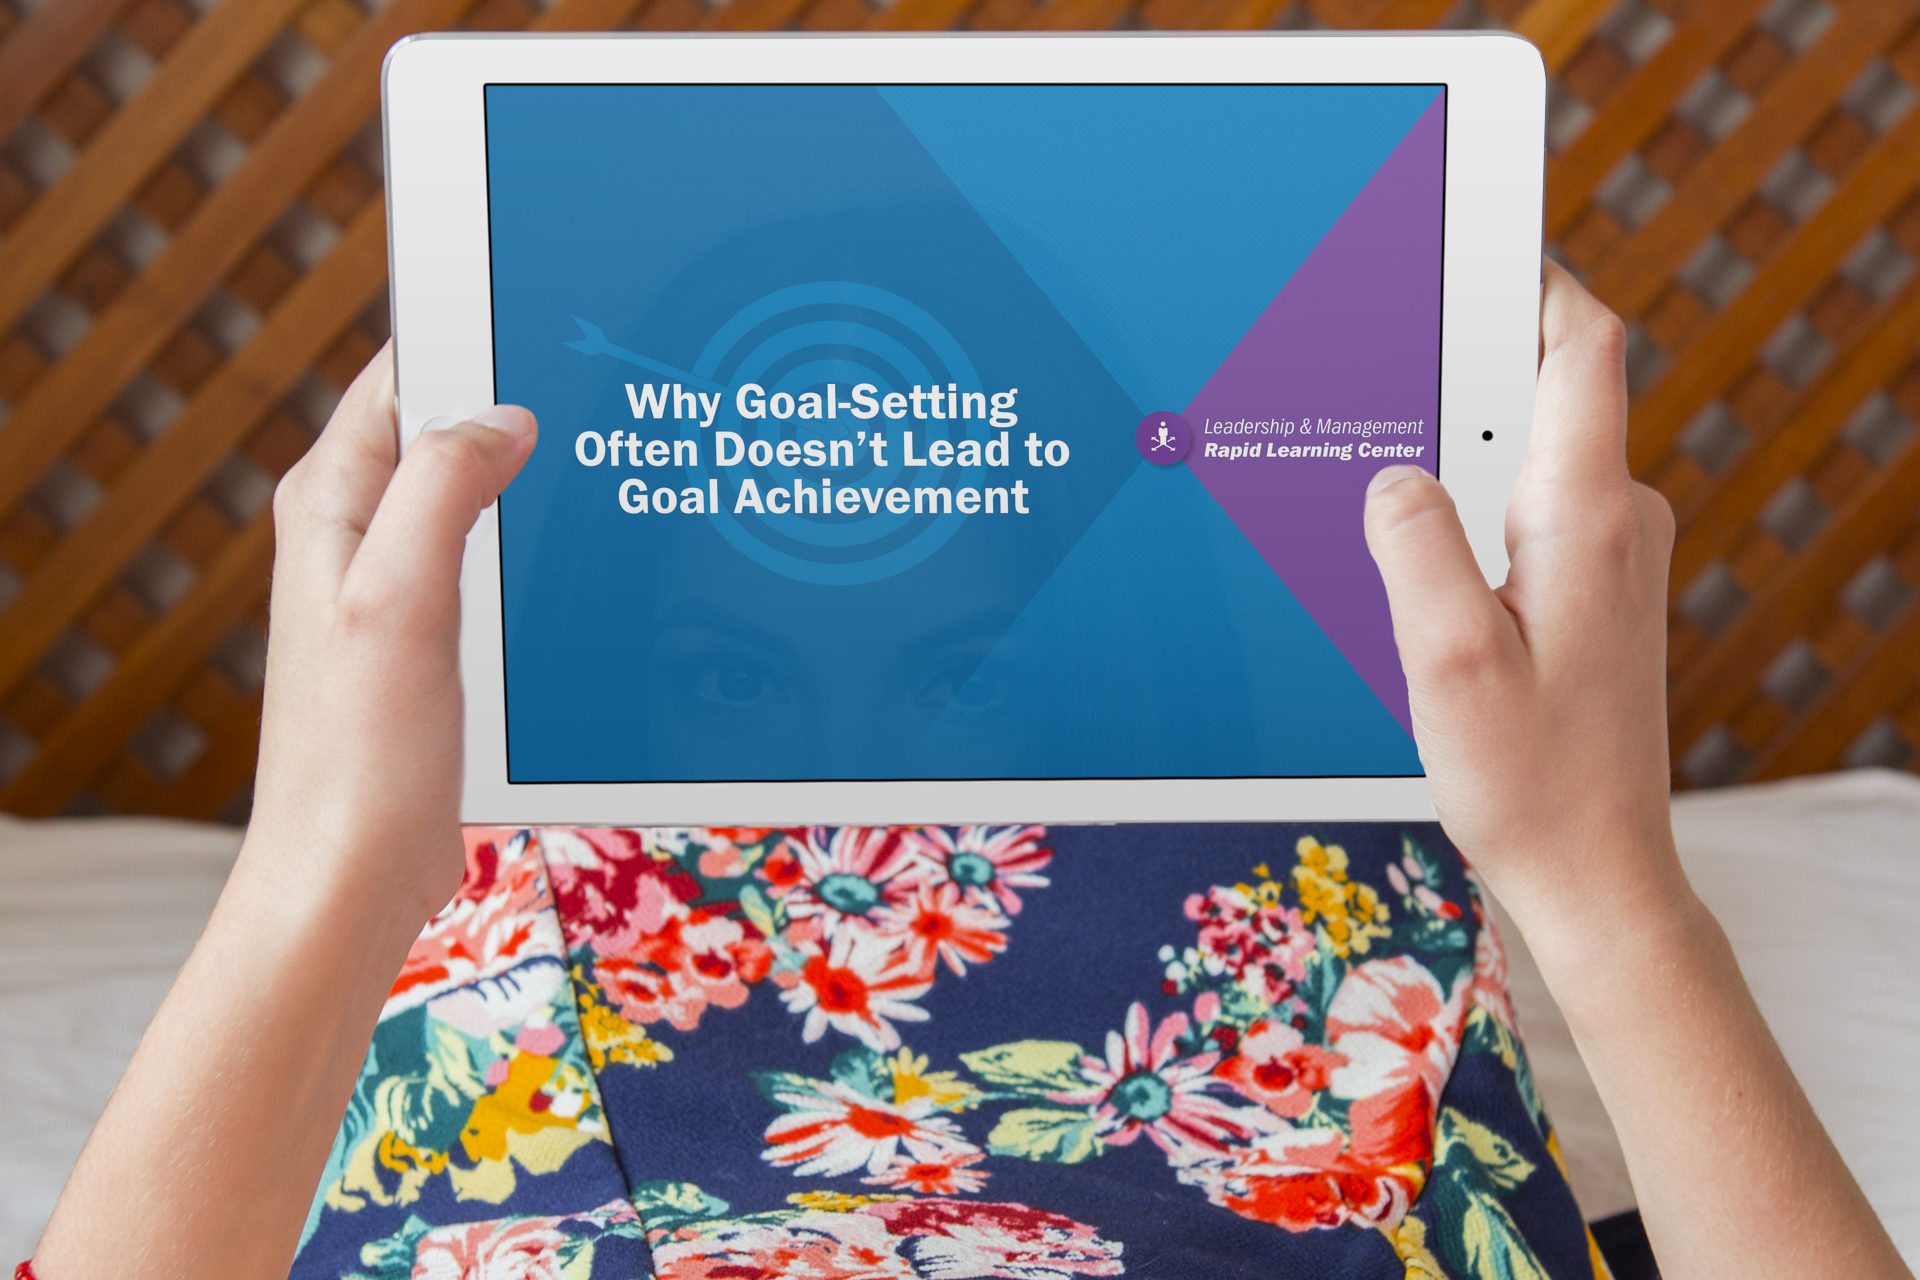 Why Goal-Setting Often Doesn't Lead to Goal Achievement